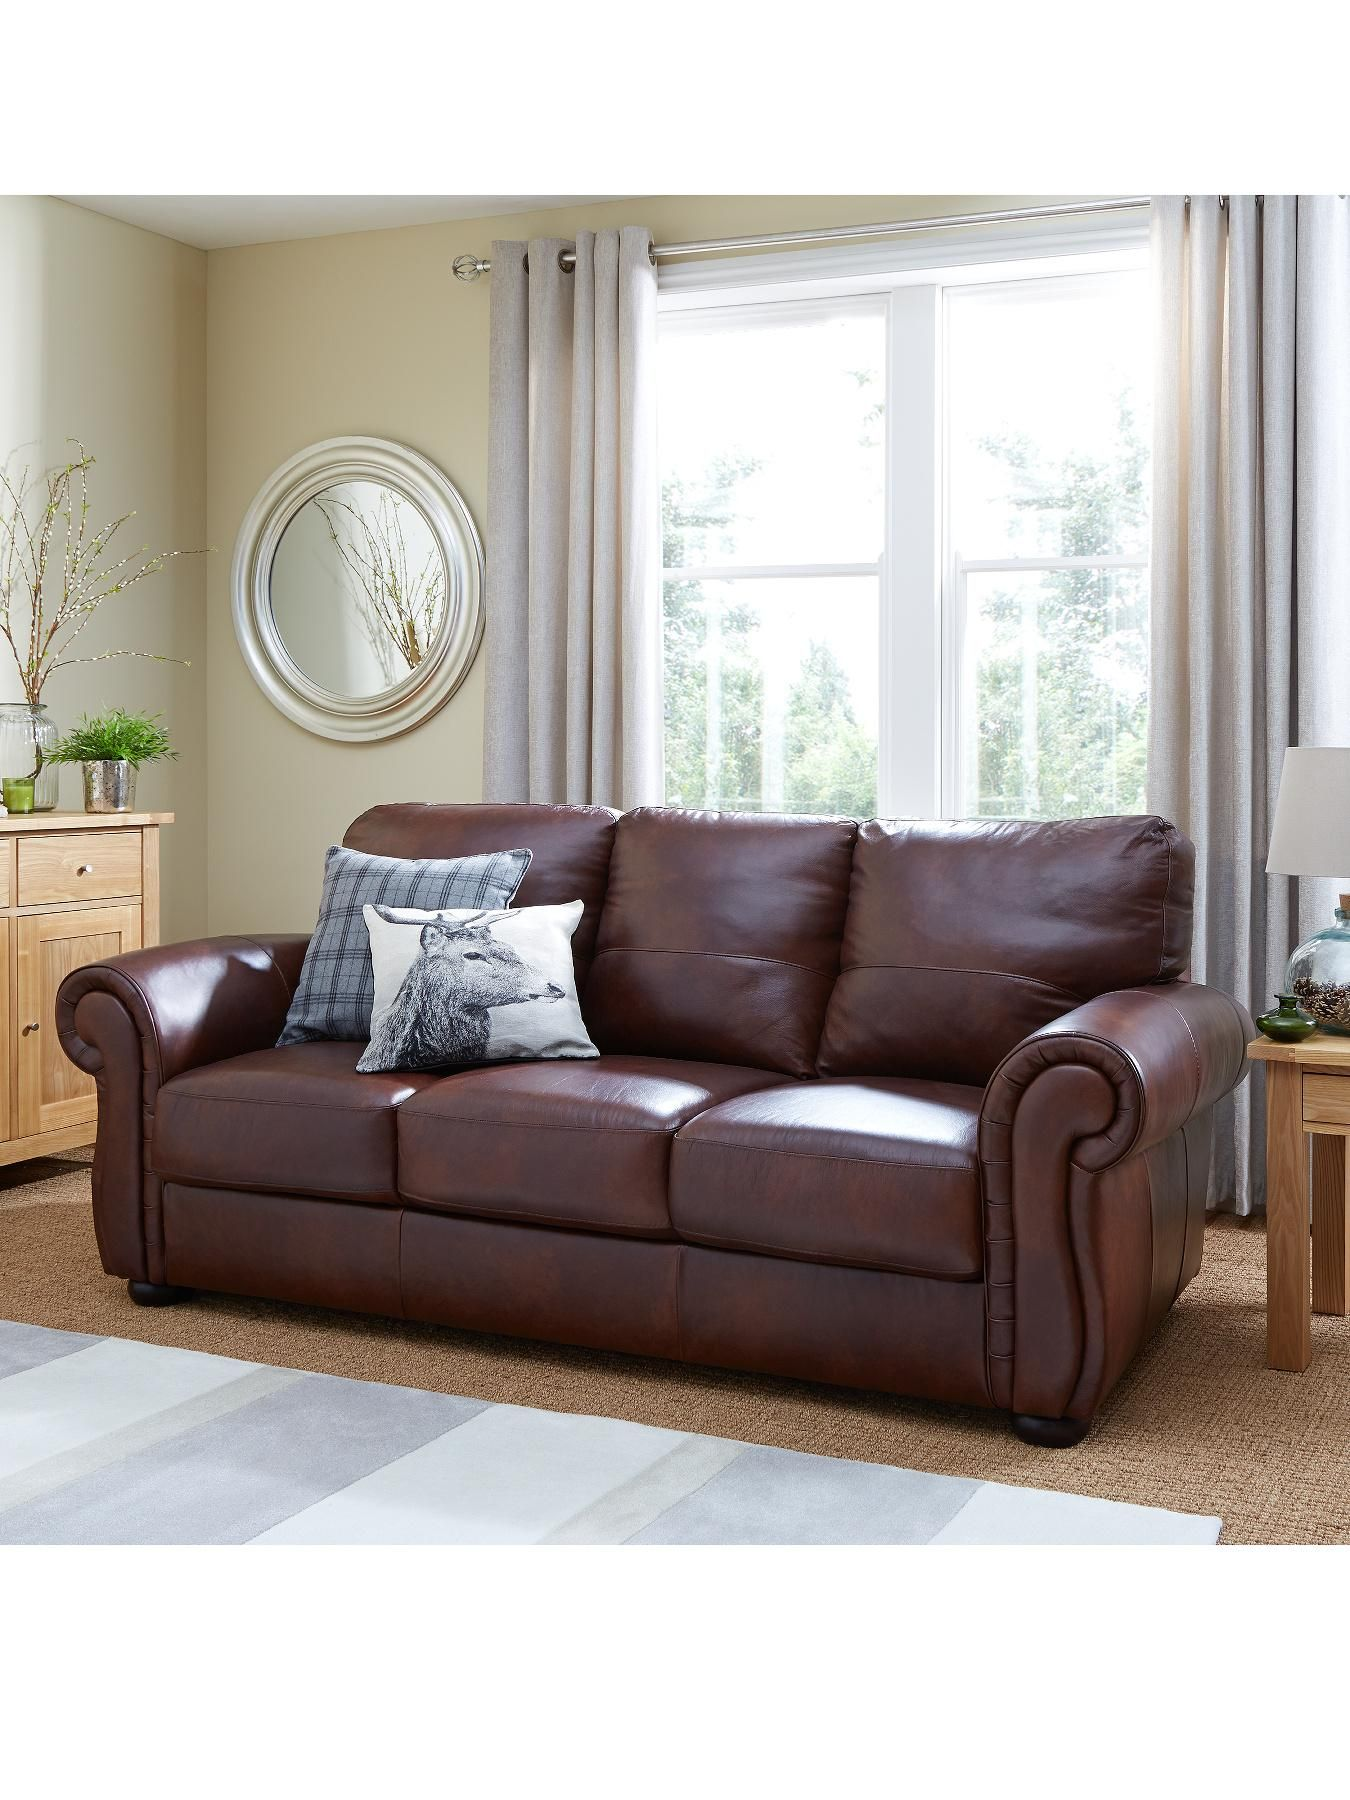 italy leather sofa uk brown fabric sectional cassina italian 3 seater our cosy home very co